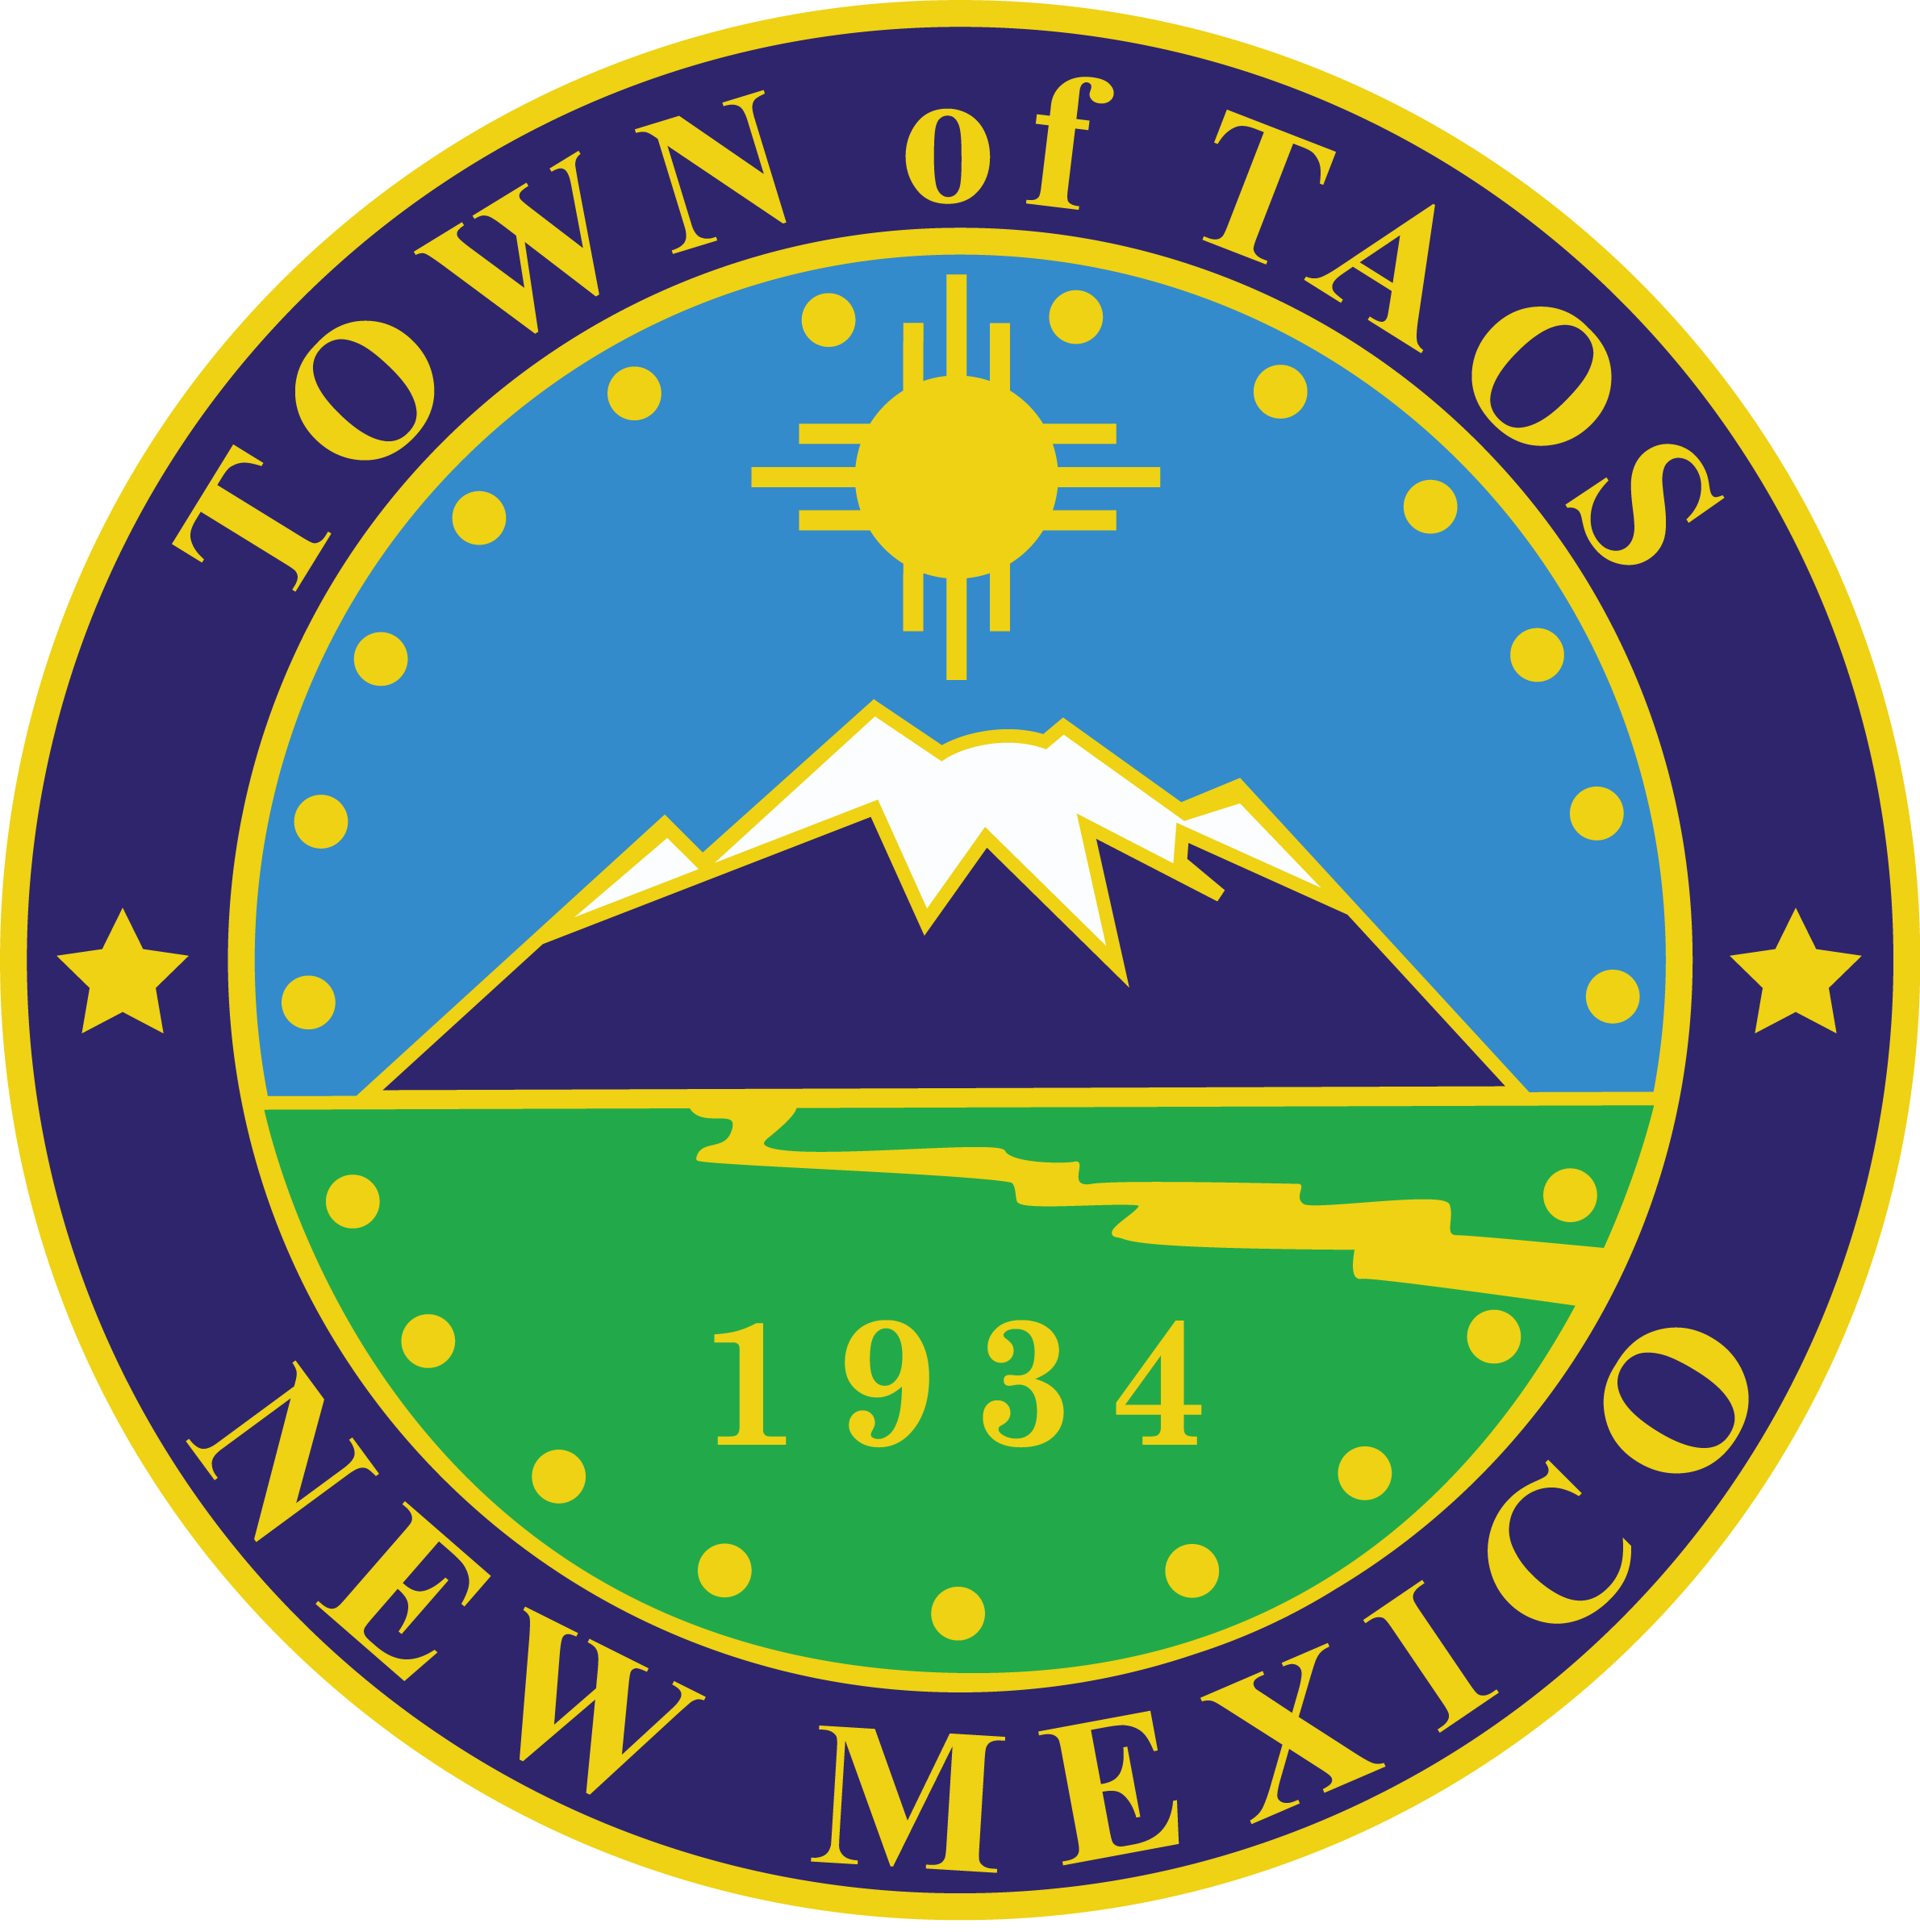 The Town of Taos NM